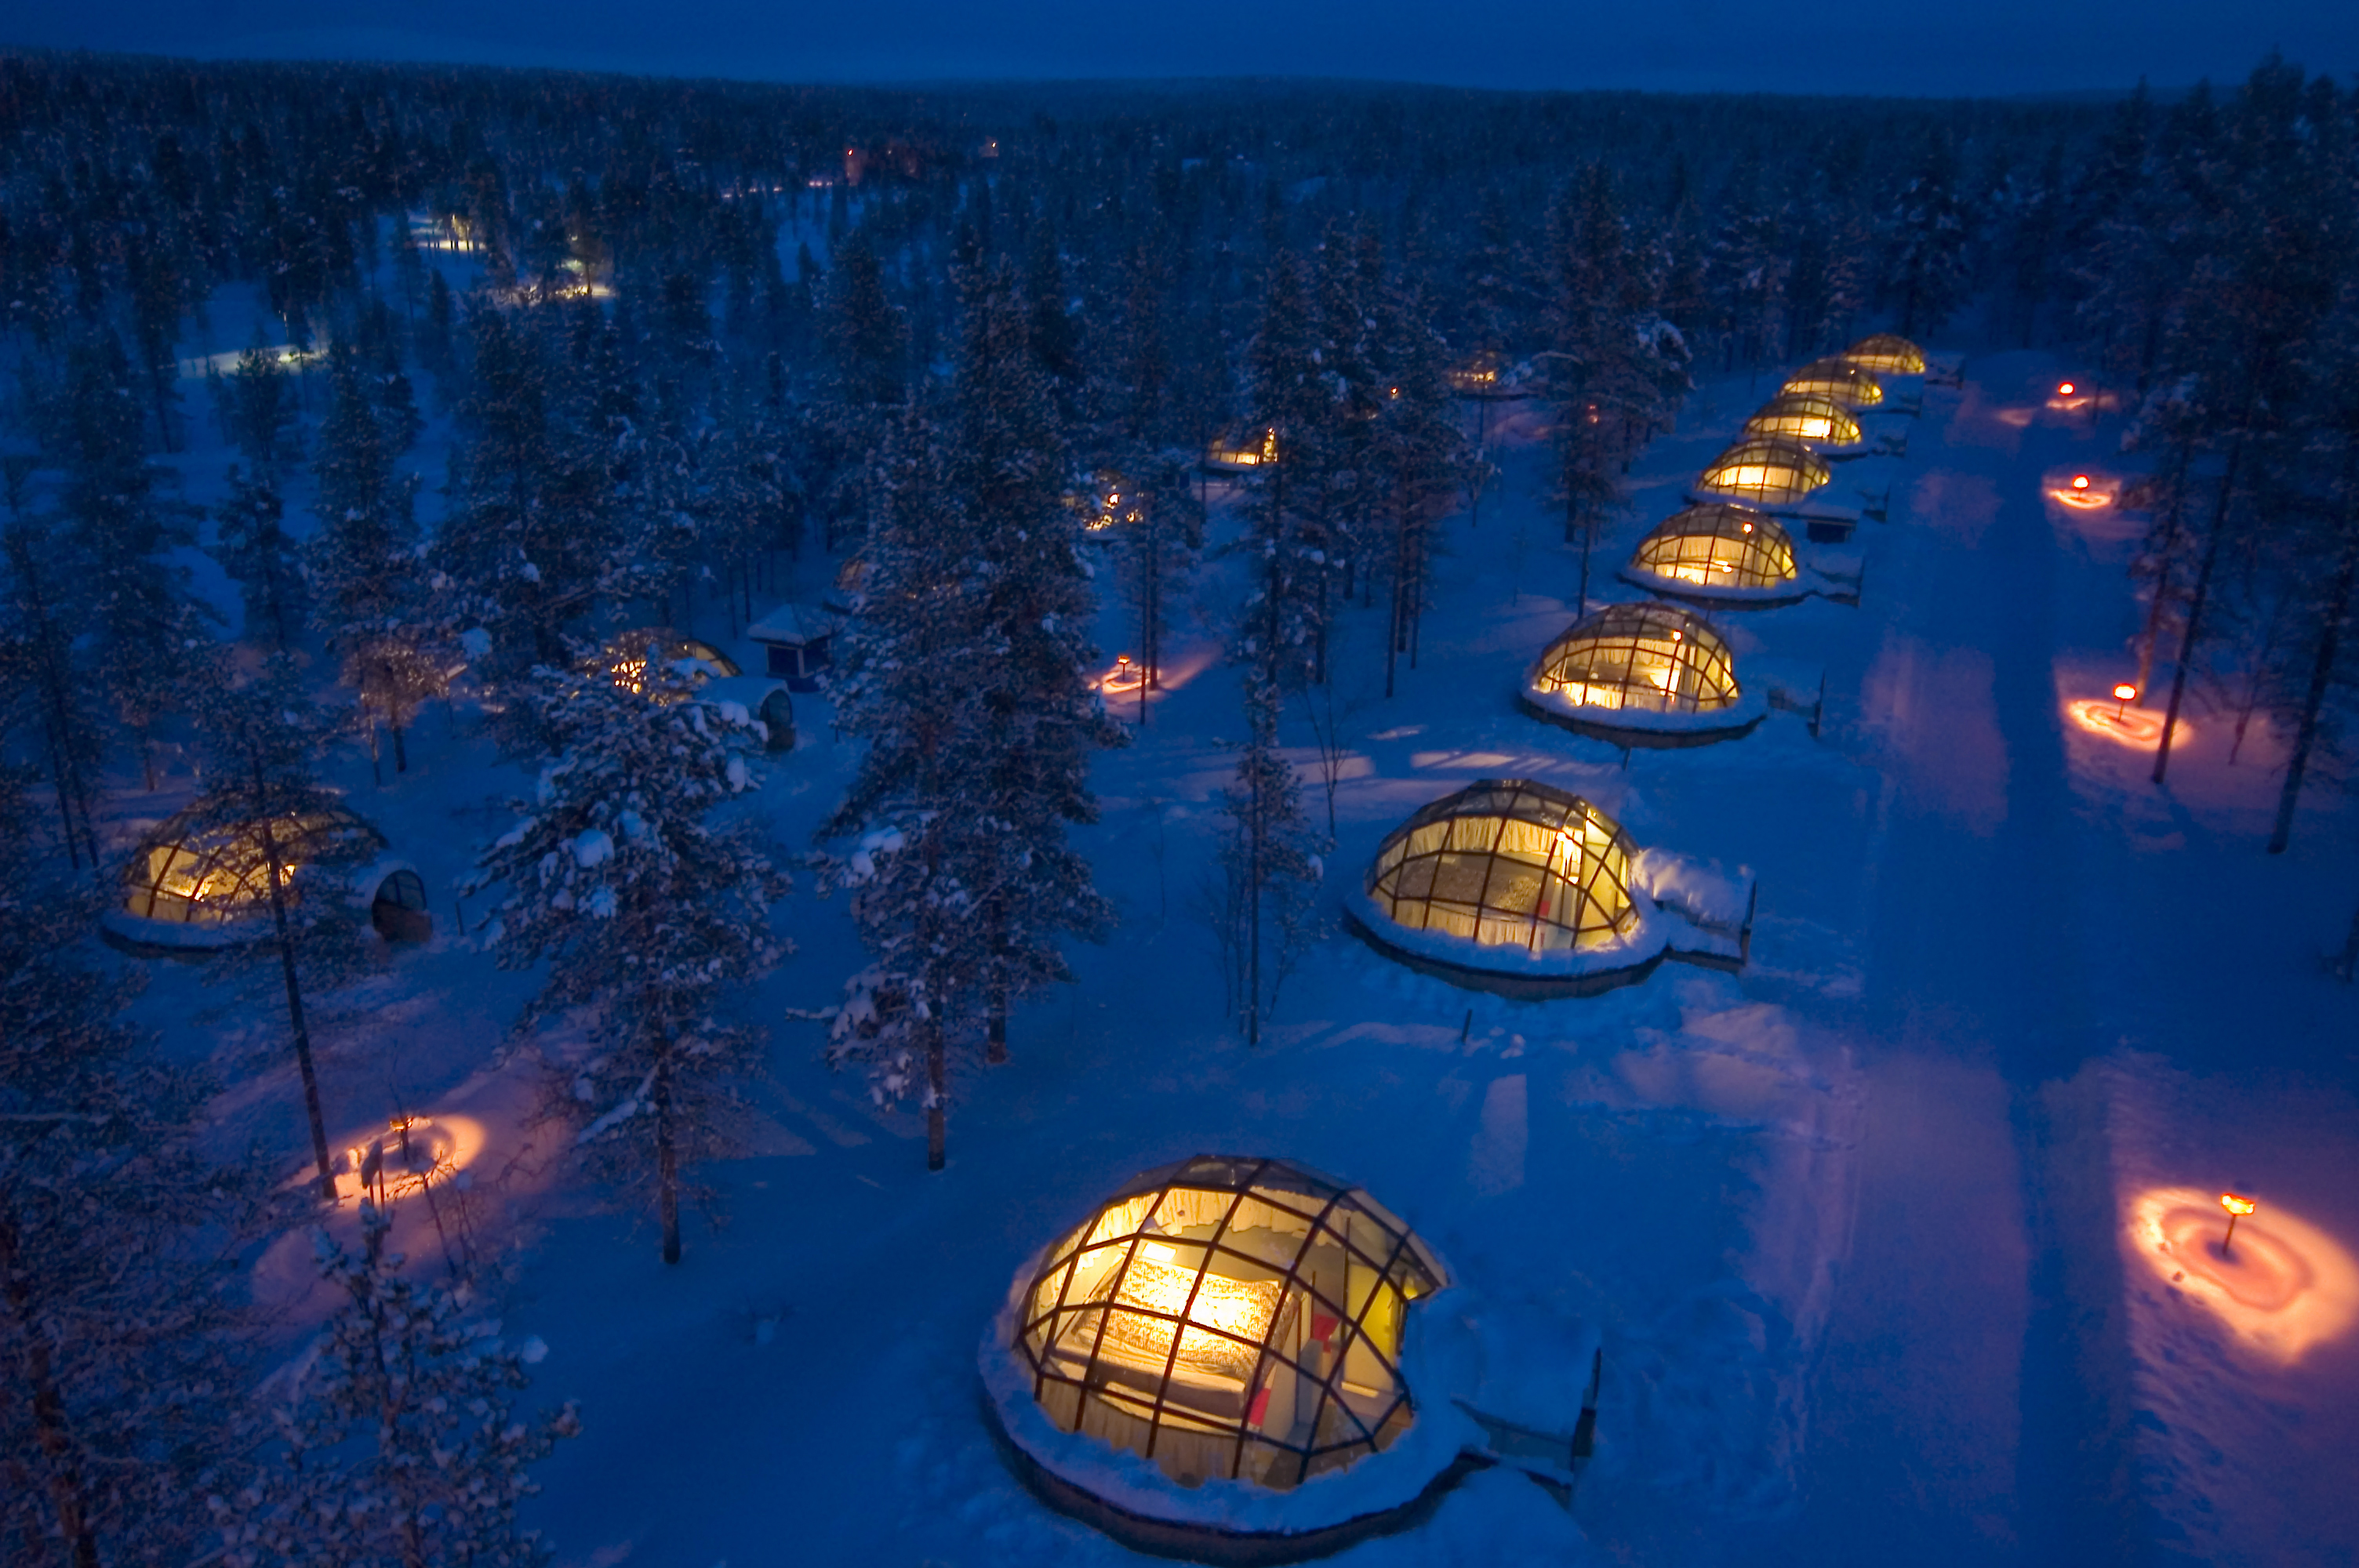 Glass Igloos in the dark